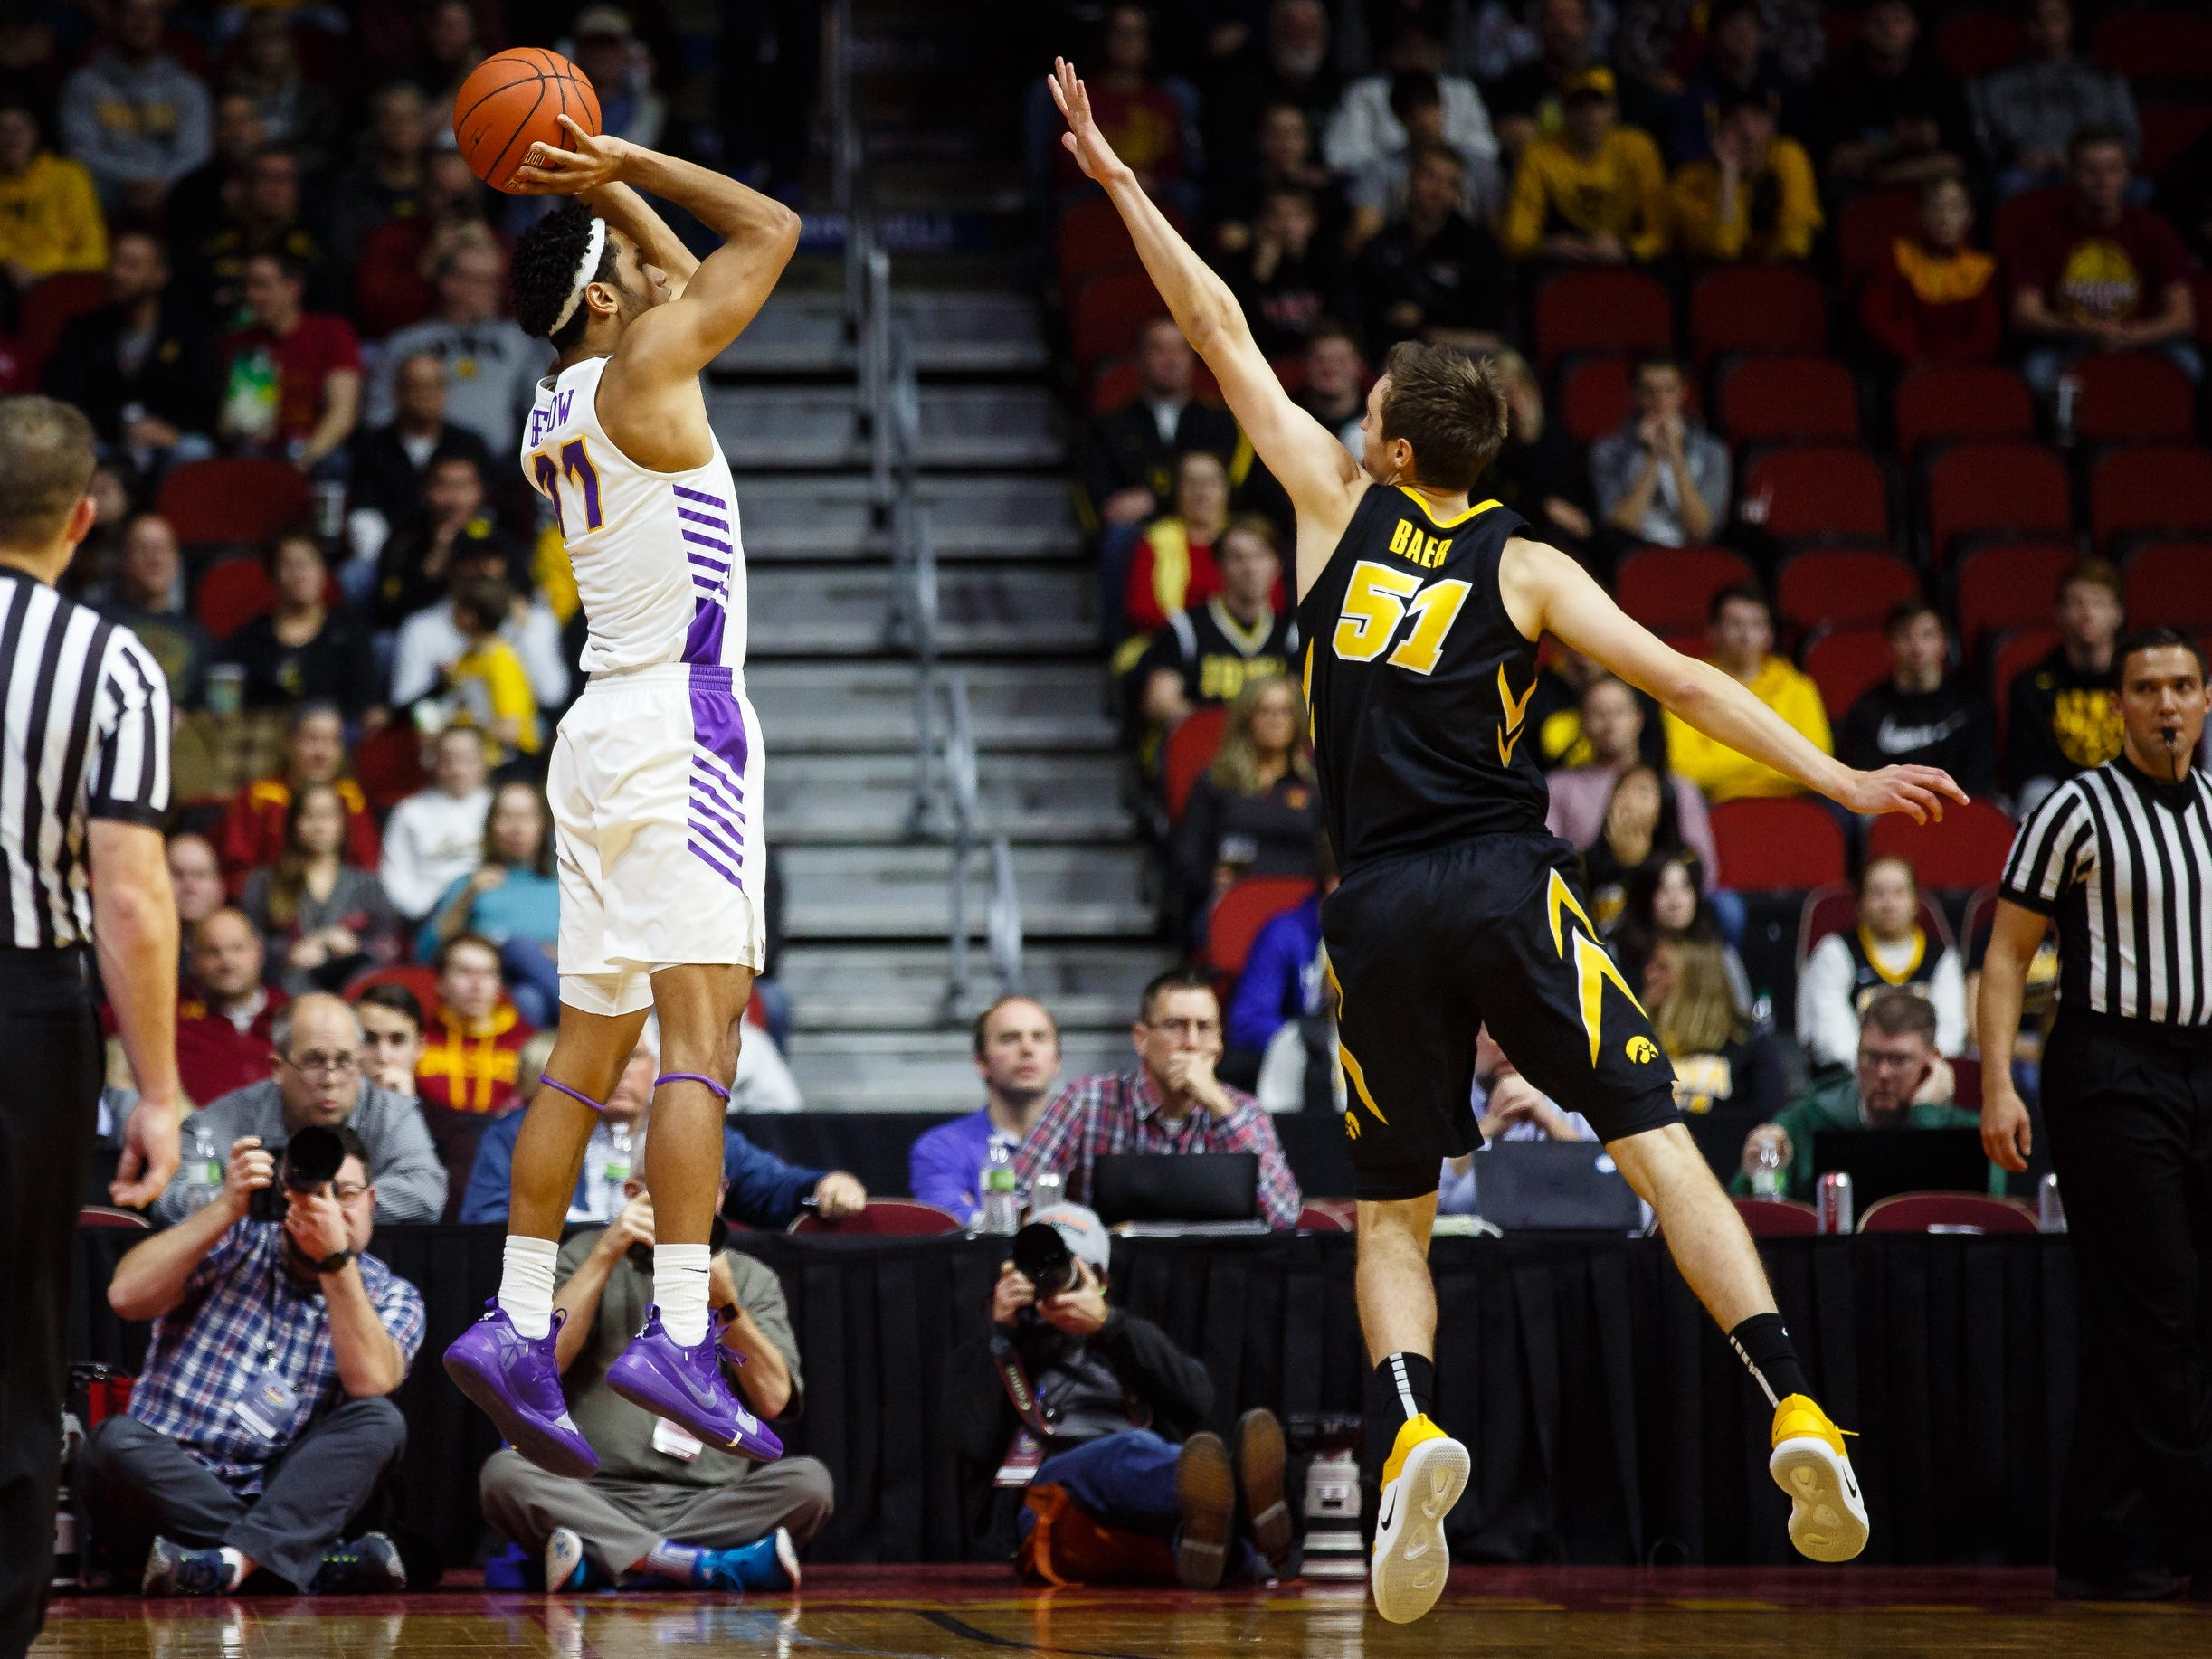 UNI's TraeÊBerhow (11) shoots over Iowa's Nicholas Baer (51) during their basketball game at the Hy-Vee Classic on Saturday, Dec. 15, 2018, in Des Moines. Iowa takes a 39-18 lead over UNI into halftime.